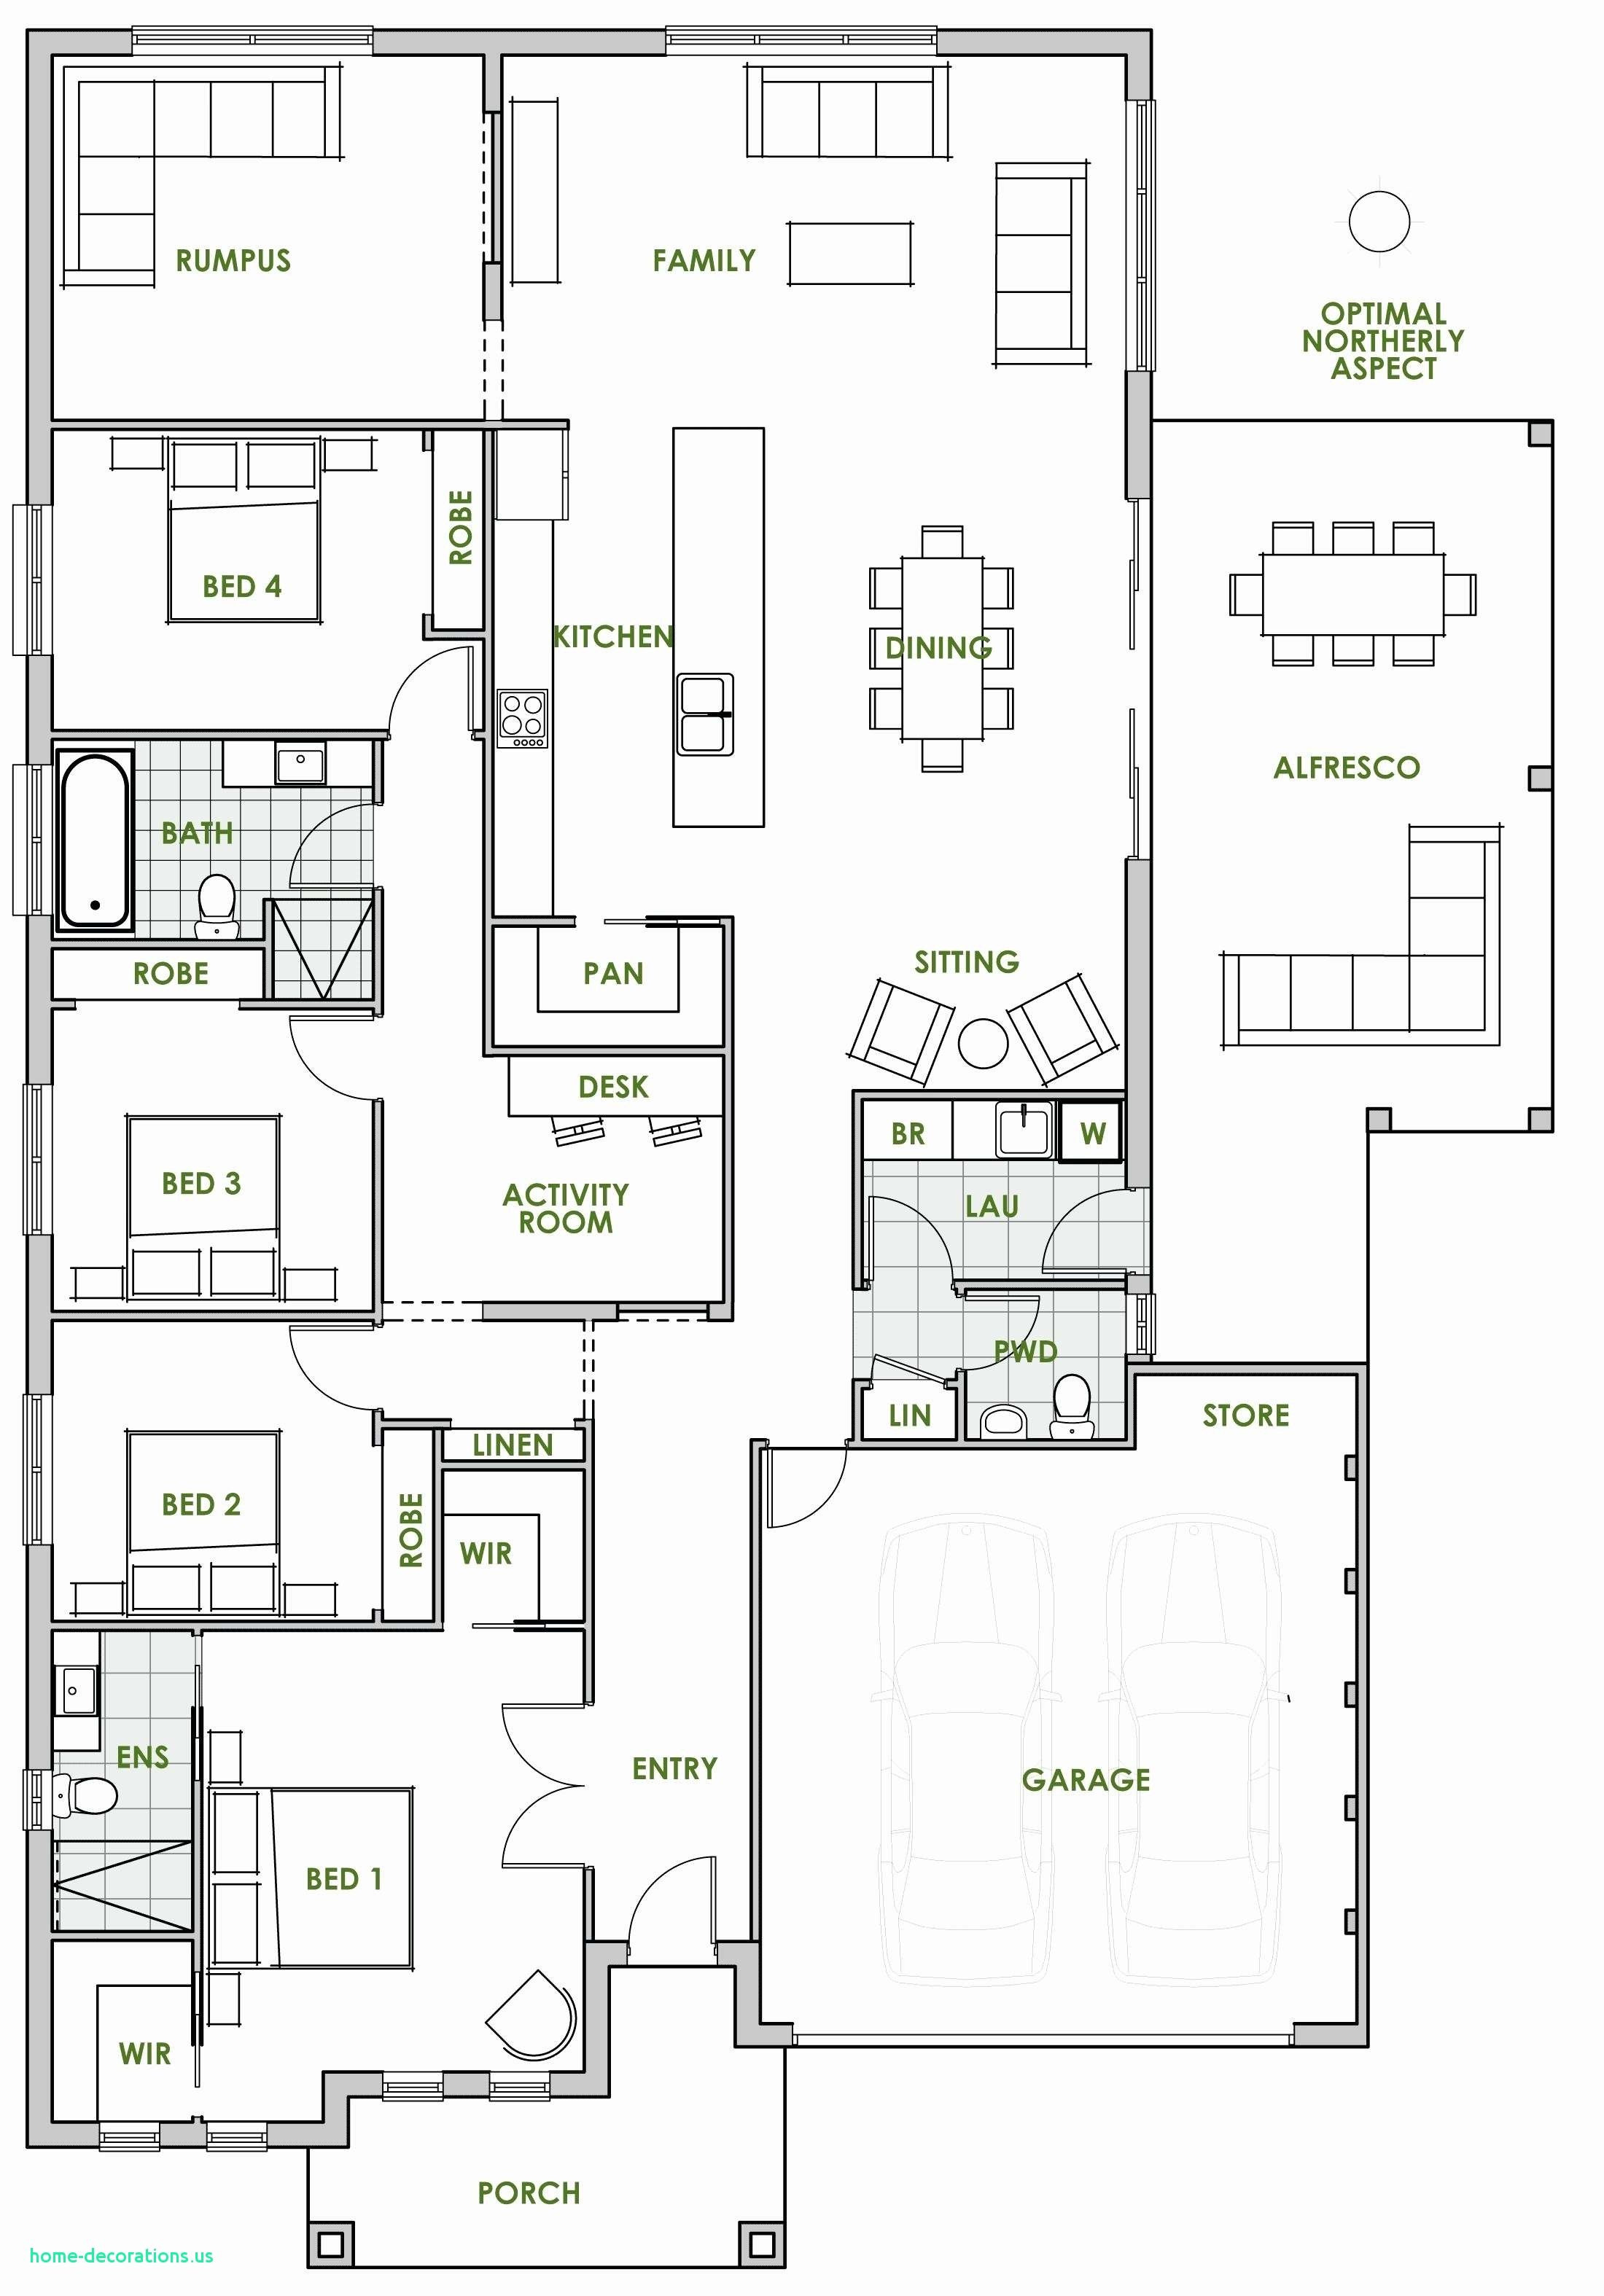 Draw Your Own House Plans Beautiful Inspirational Build Your Own House Plans for Free